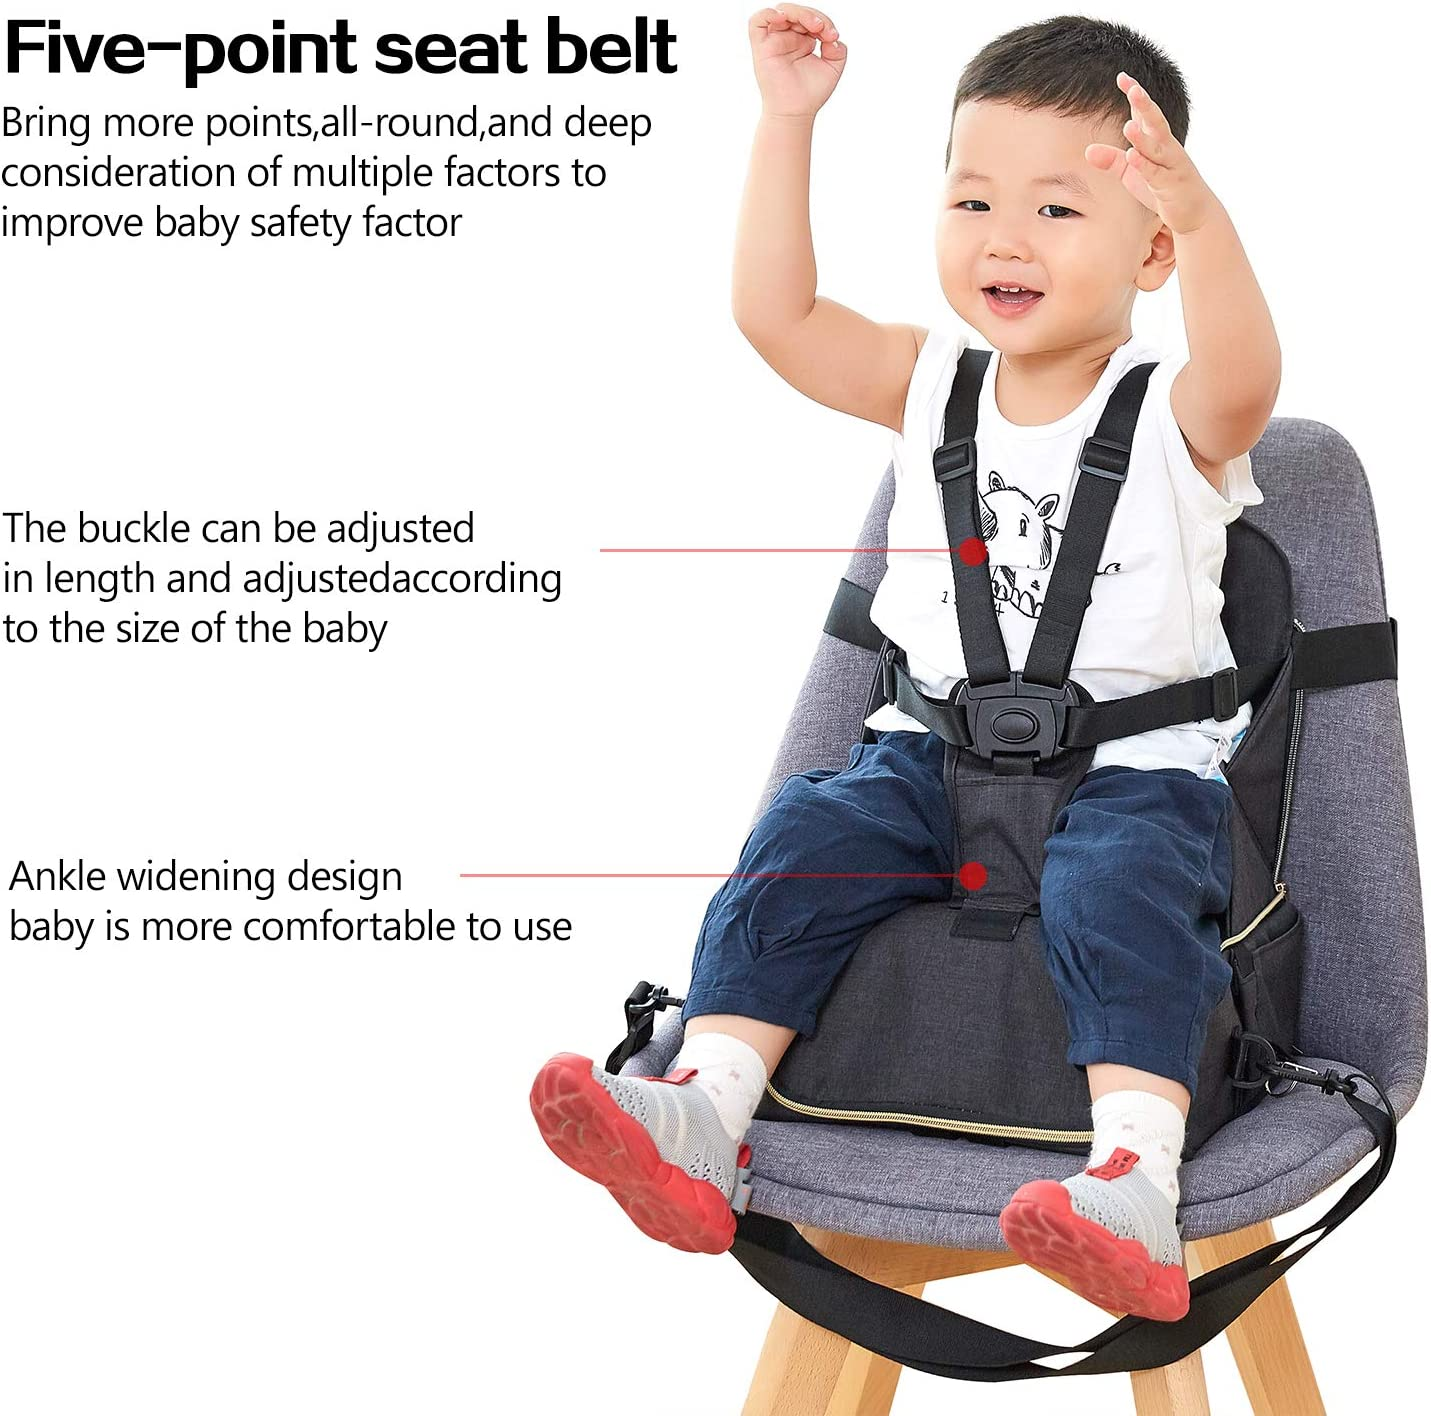 5-Point Harness Travel Backpack -Fits Most Standard Size Chairs Multi-Function Portable Baby Diaper Bag BeeViuc Travel Booster Seat for Family and Toddler Dining Camouflage